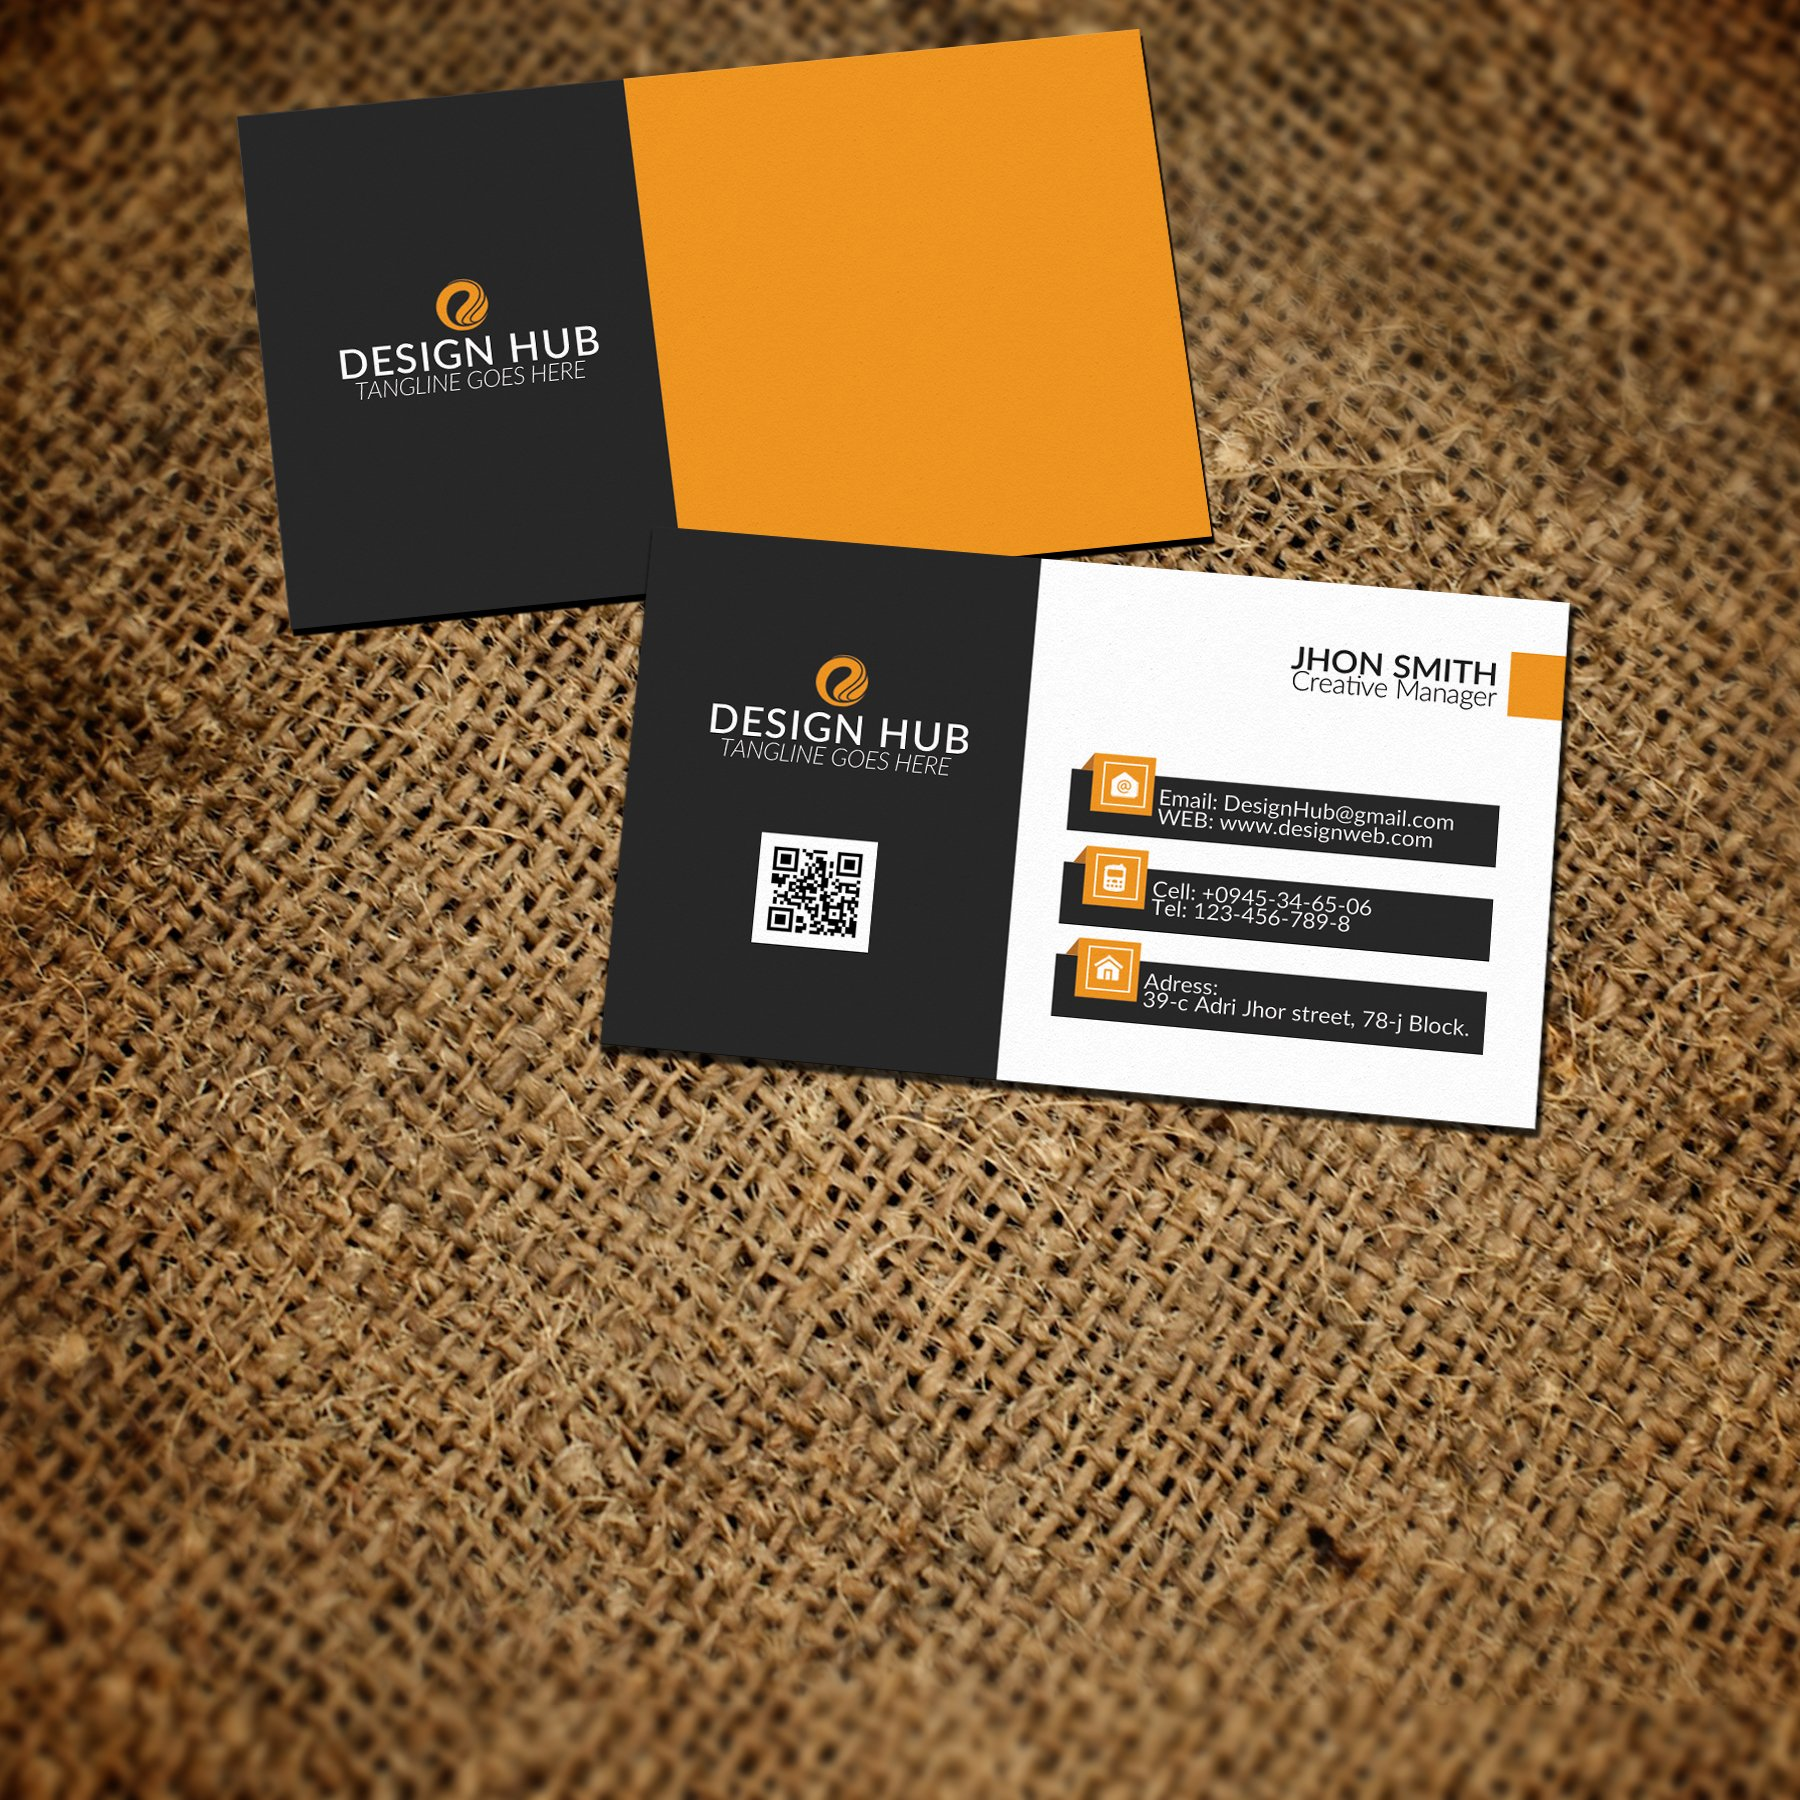 Office max business card template 471969 hitori49fo office max business card template the best templates free templates for microsoft office suite office templates accmission Gallery